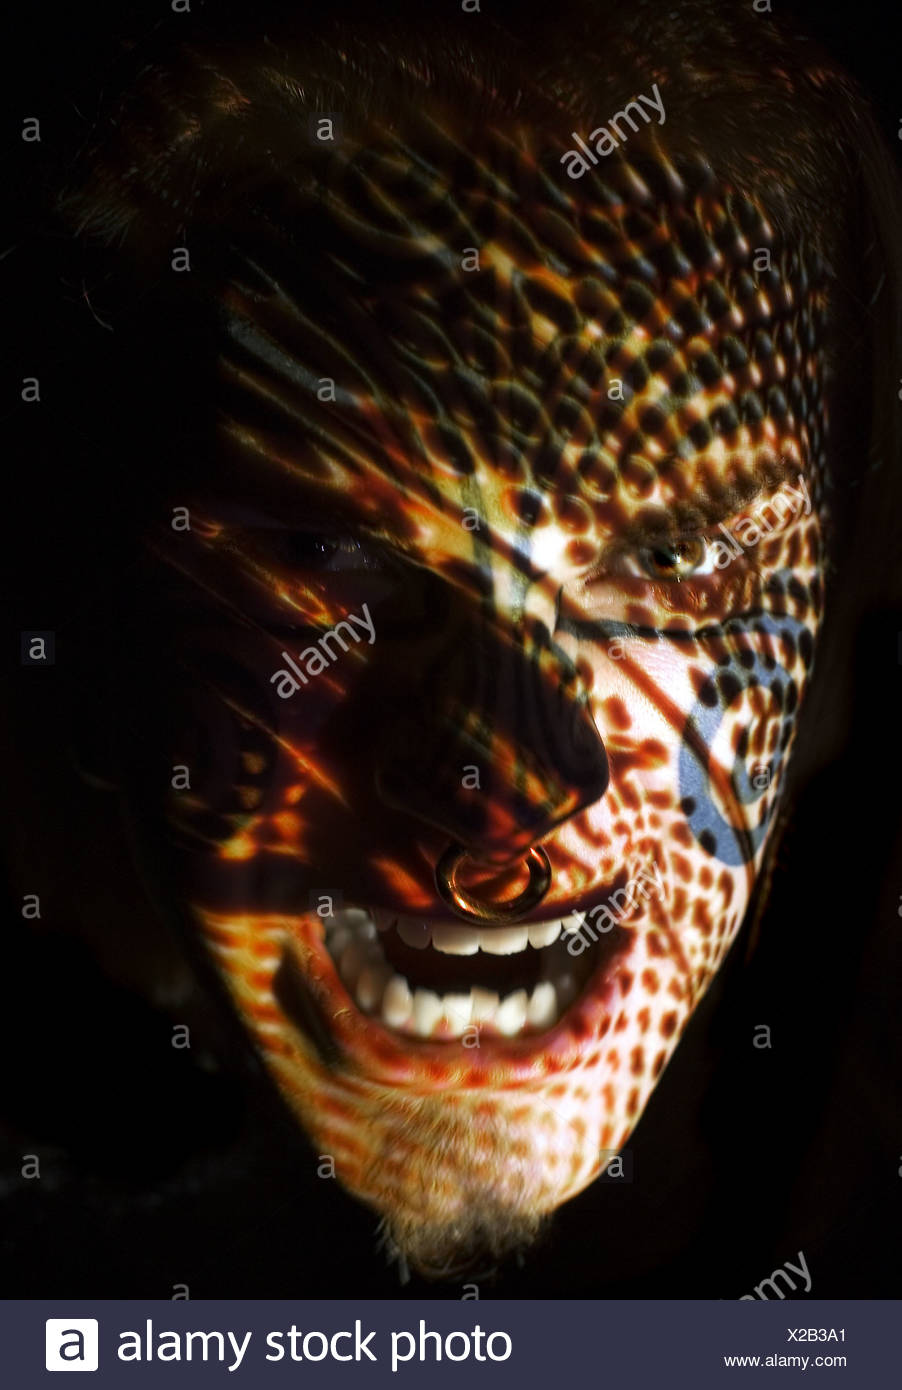 Man Head with Projection - Stock Image